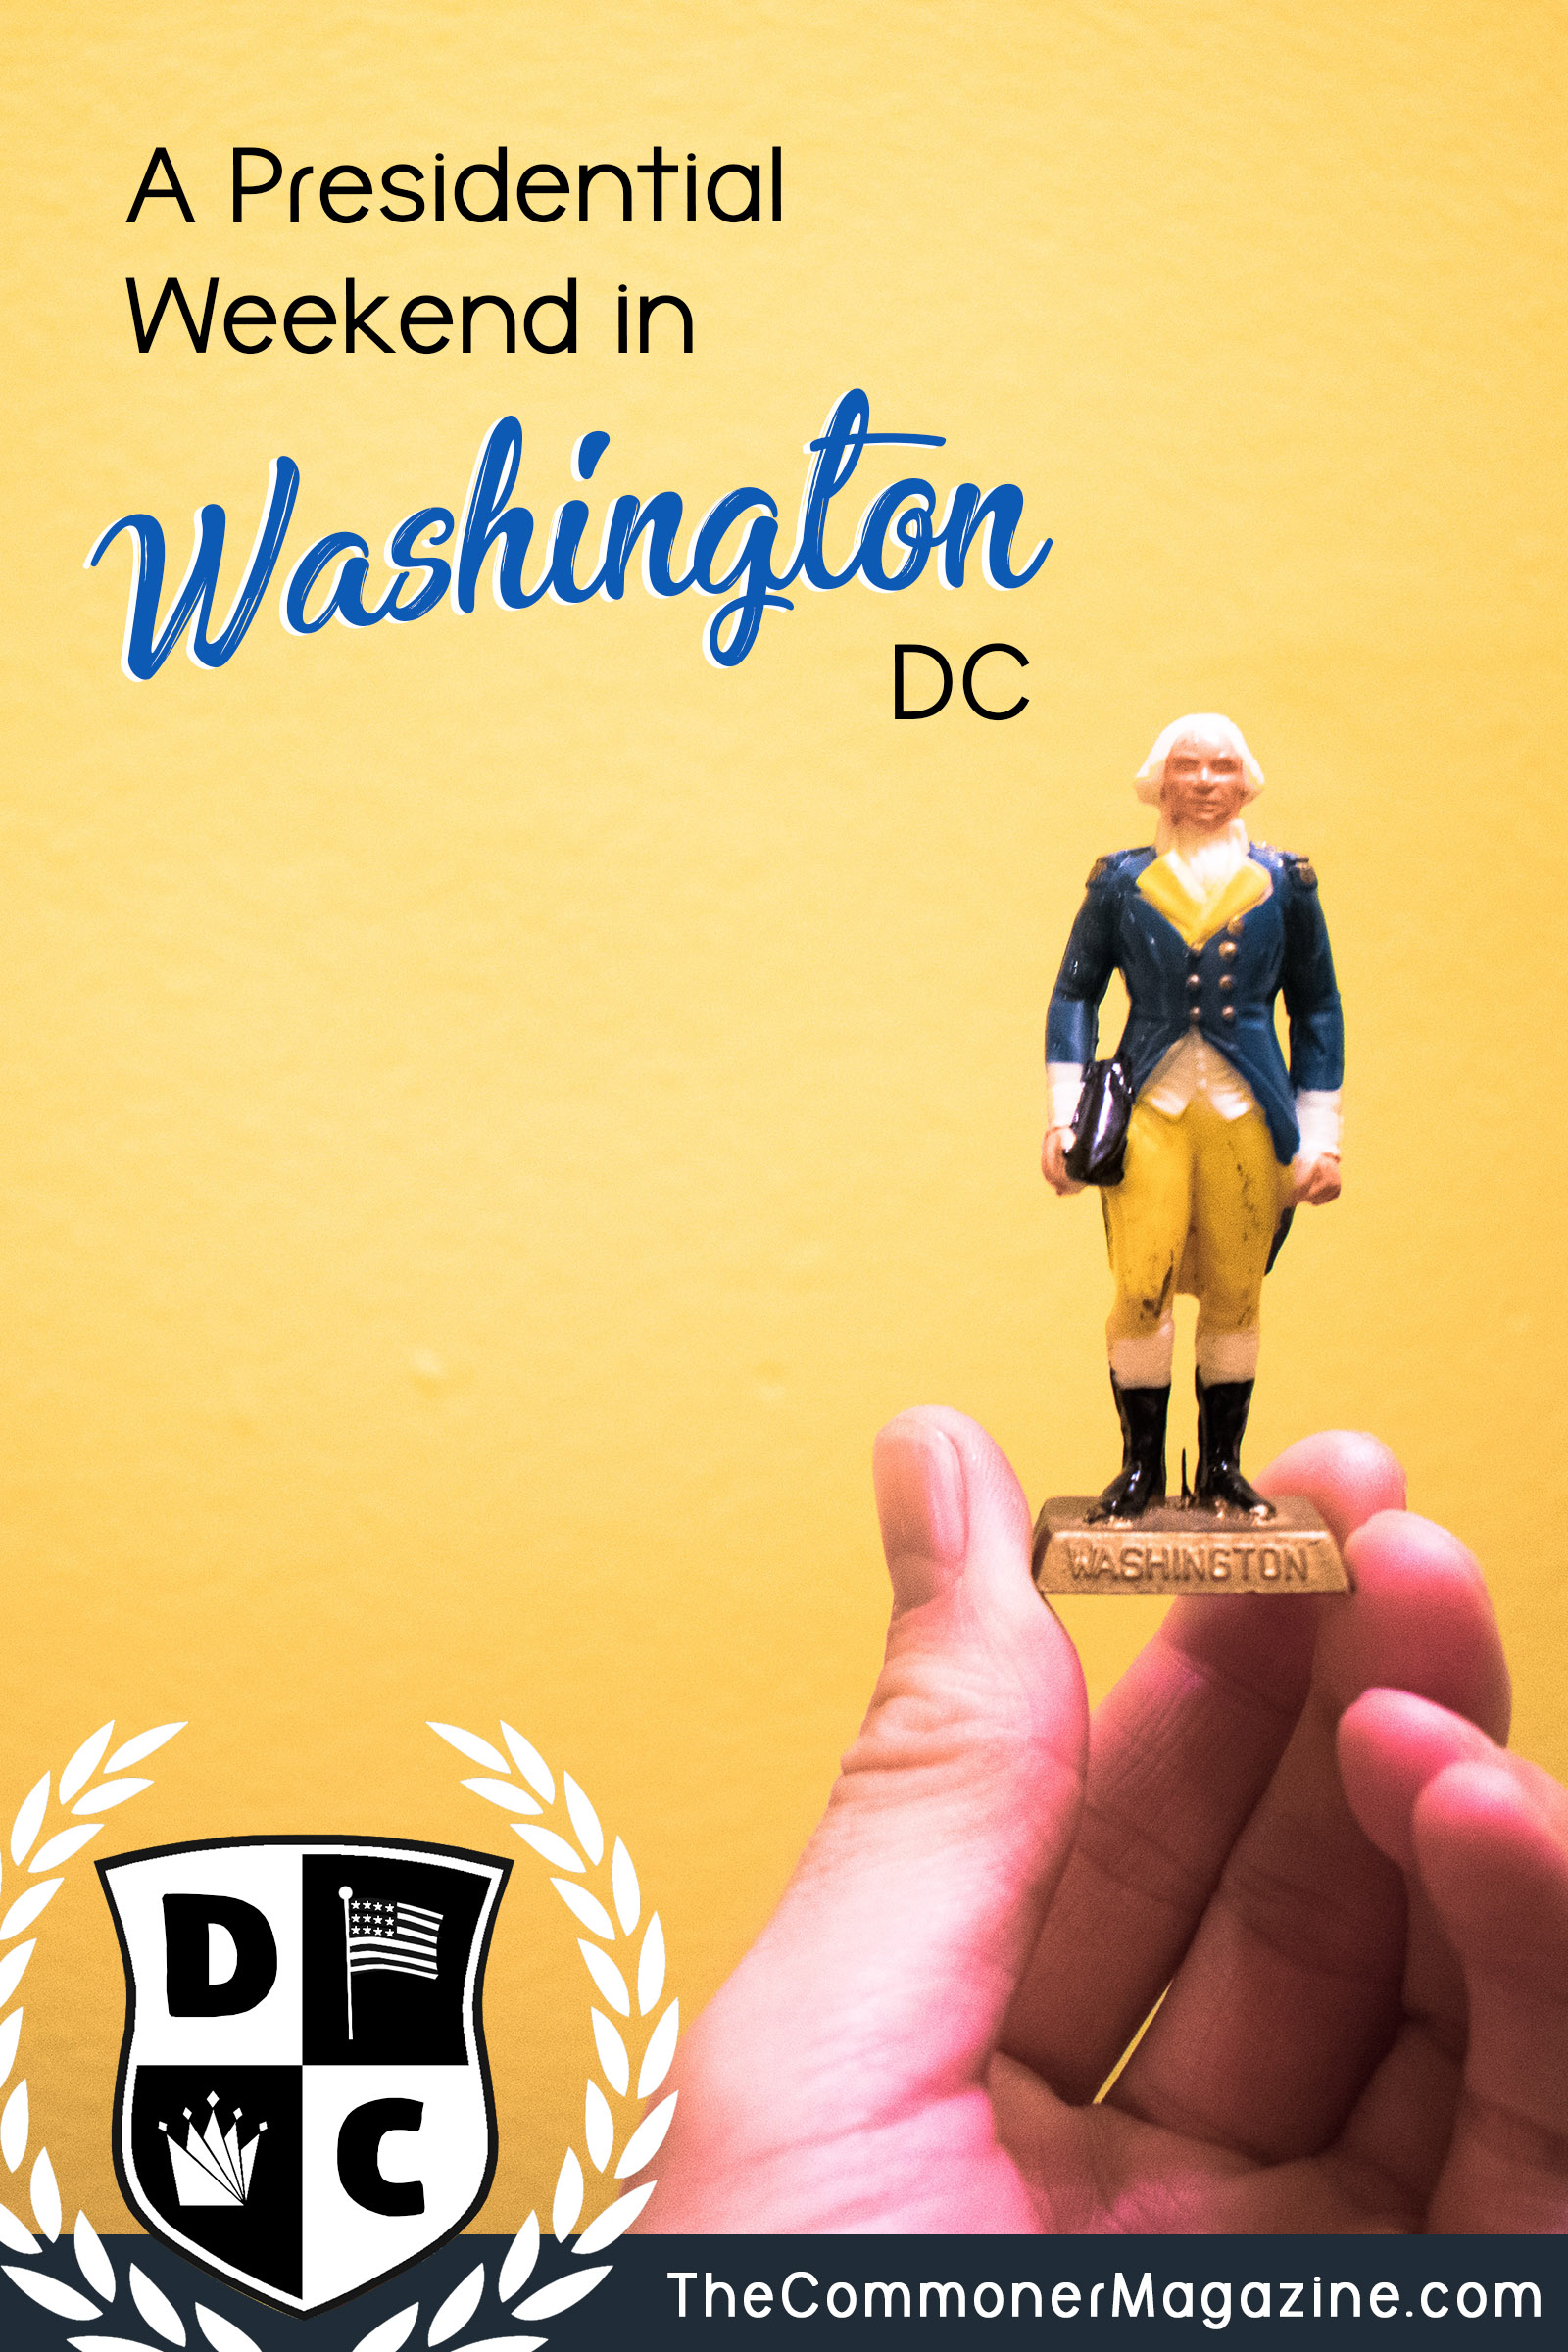 Does everyone like a theme?  If you are looking for something new to perform in Washington DC?  We are covered in a perfect presidential weekend in the capital.  Enjoy activities that go beyond the famous memorials of the President.  Commander's magazine full of travel tips from local experts.  #Washington DC #Tonston Washington #Presidential #WaterGate #DC #Washington Construction # USA